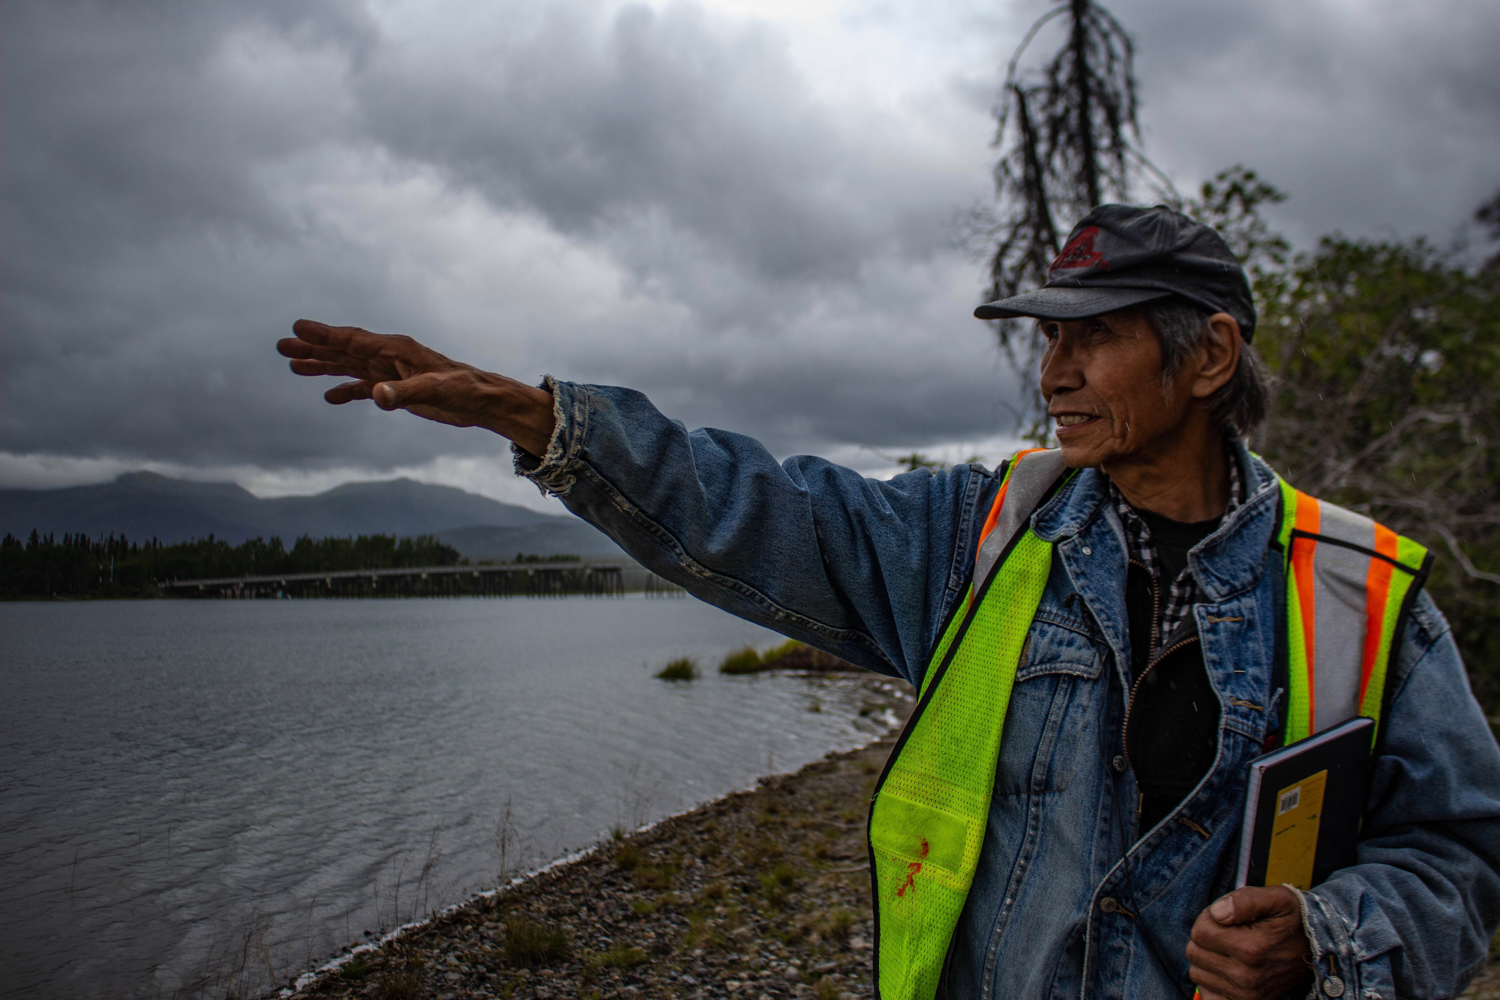 Johnny Johns, 64, oversees the work being done on the riverbanks he used to walk as a young man. He can't remember a time when the water cut into the banks as deeply as it does now. Photo by Madeline Lines.